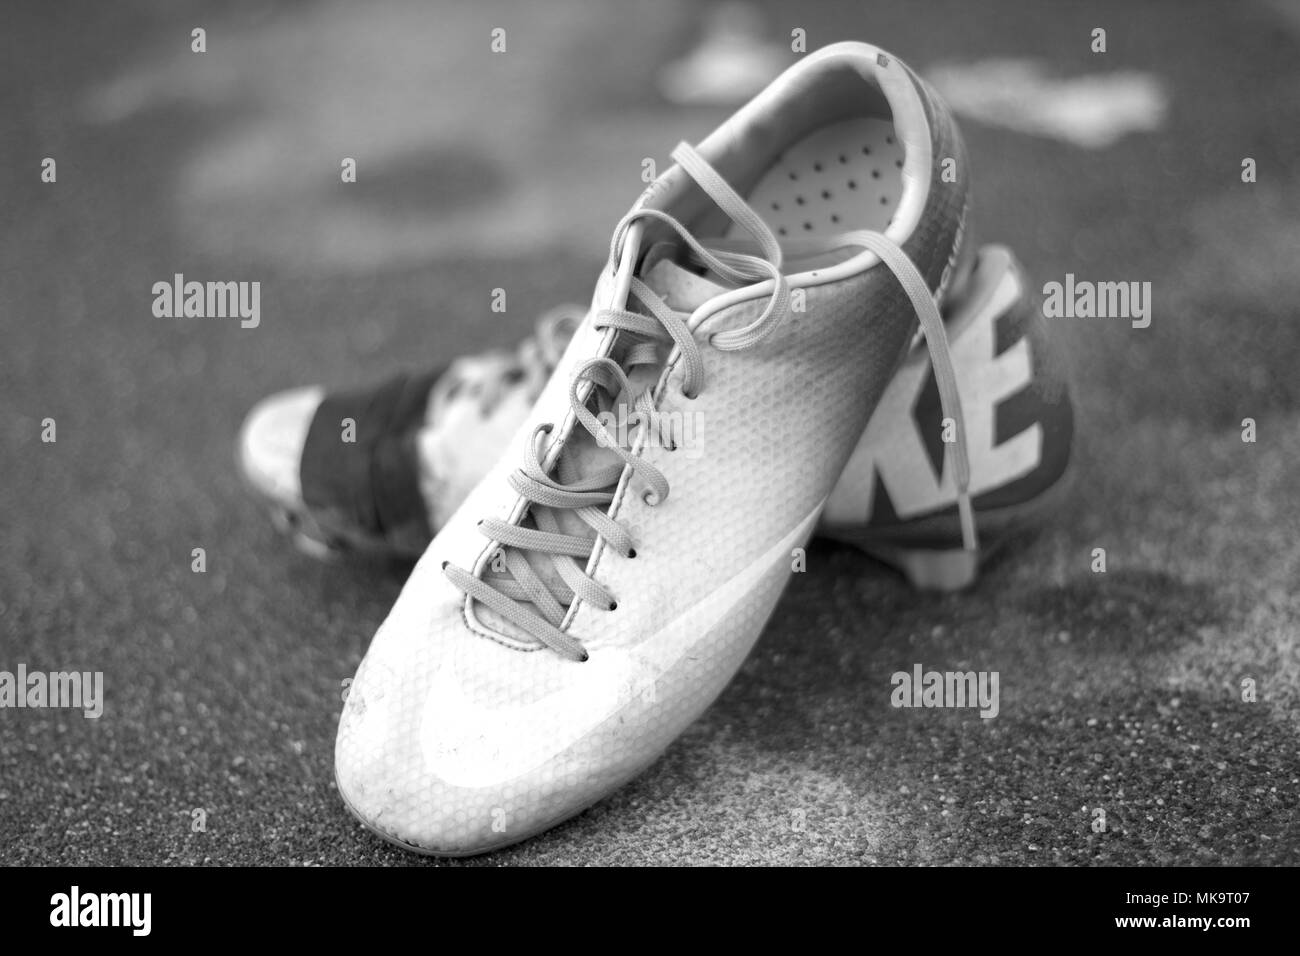 Yakima, Washington / USA - December 17, 2016:  Worn out and well loved soccer cleats displayed in an artistic photograph. - Stock Image